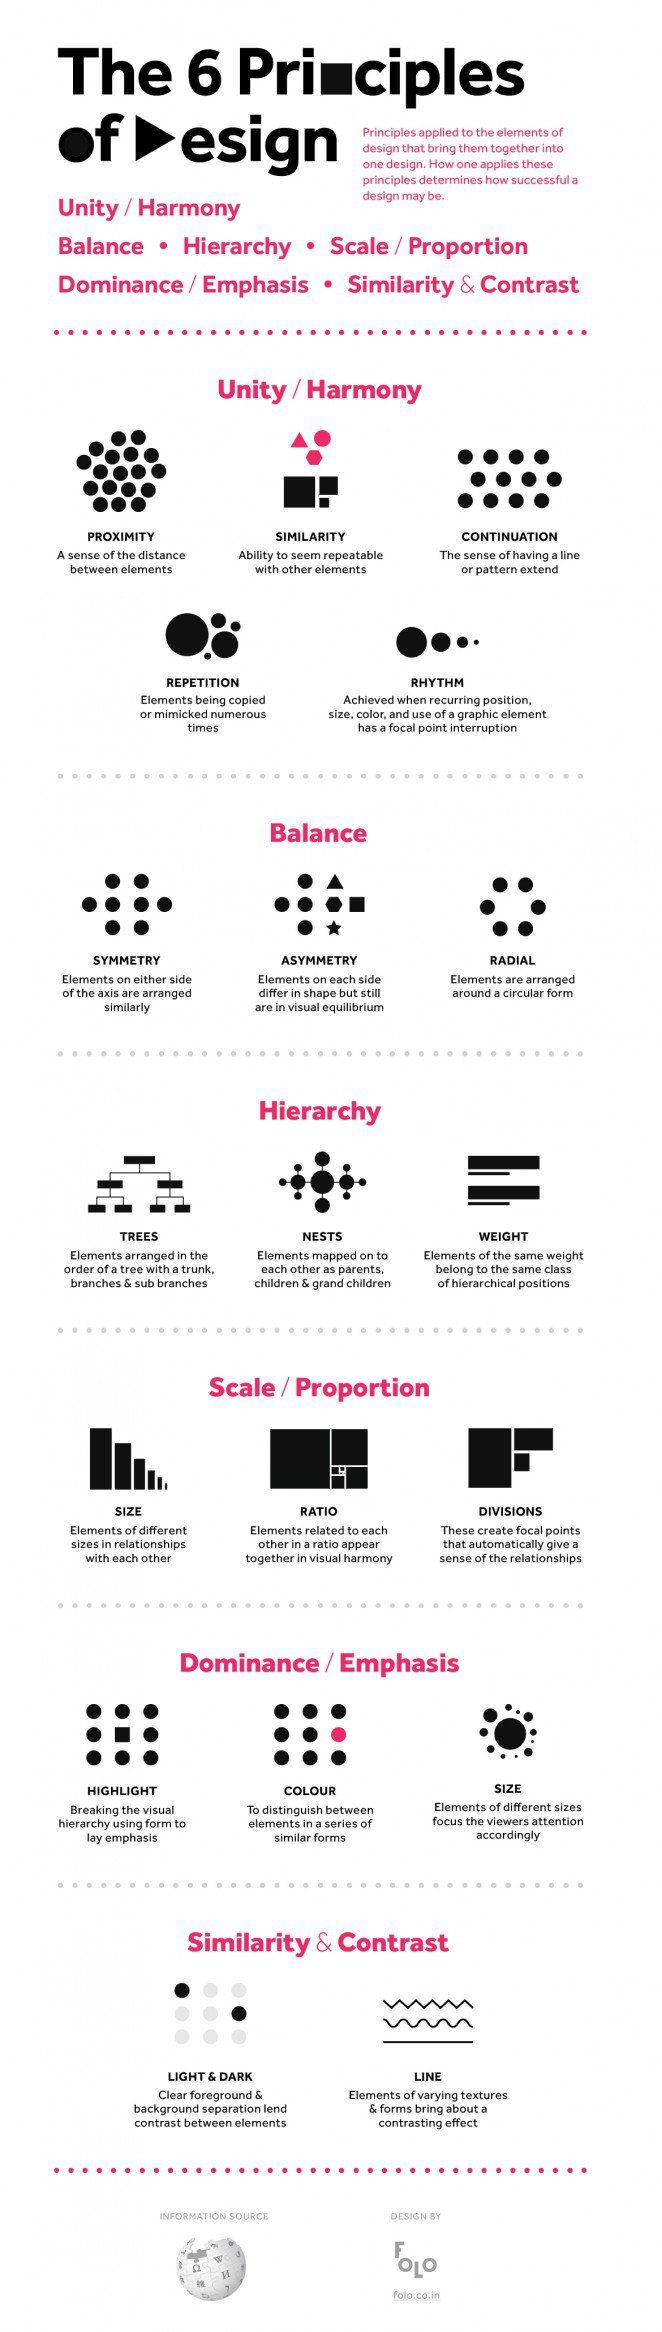 40 Complex Topics Explained Perfectly By Infographics